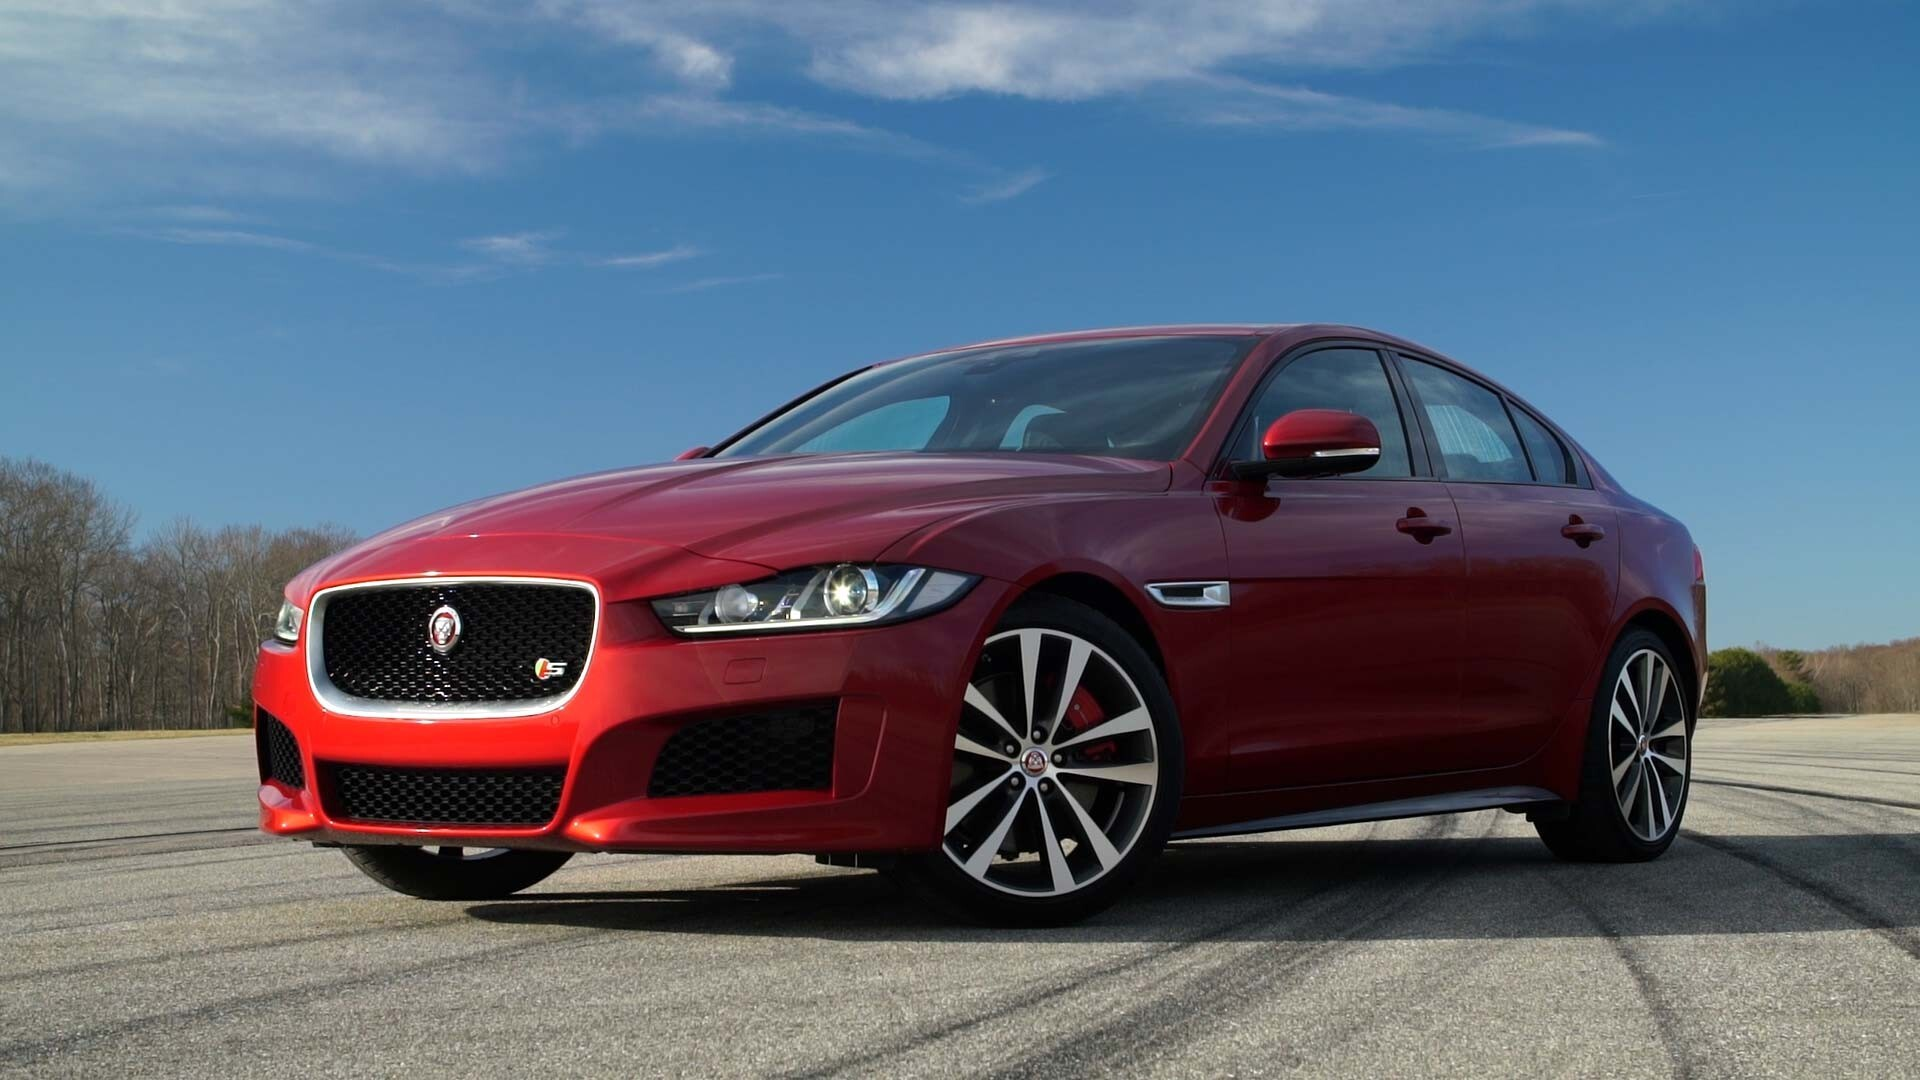 Latest 2018 Jaguar Xe Red Gorgeous Car Hd Wallpapers